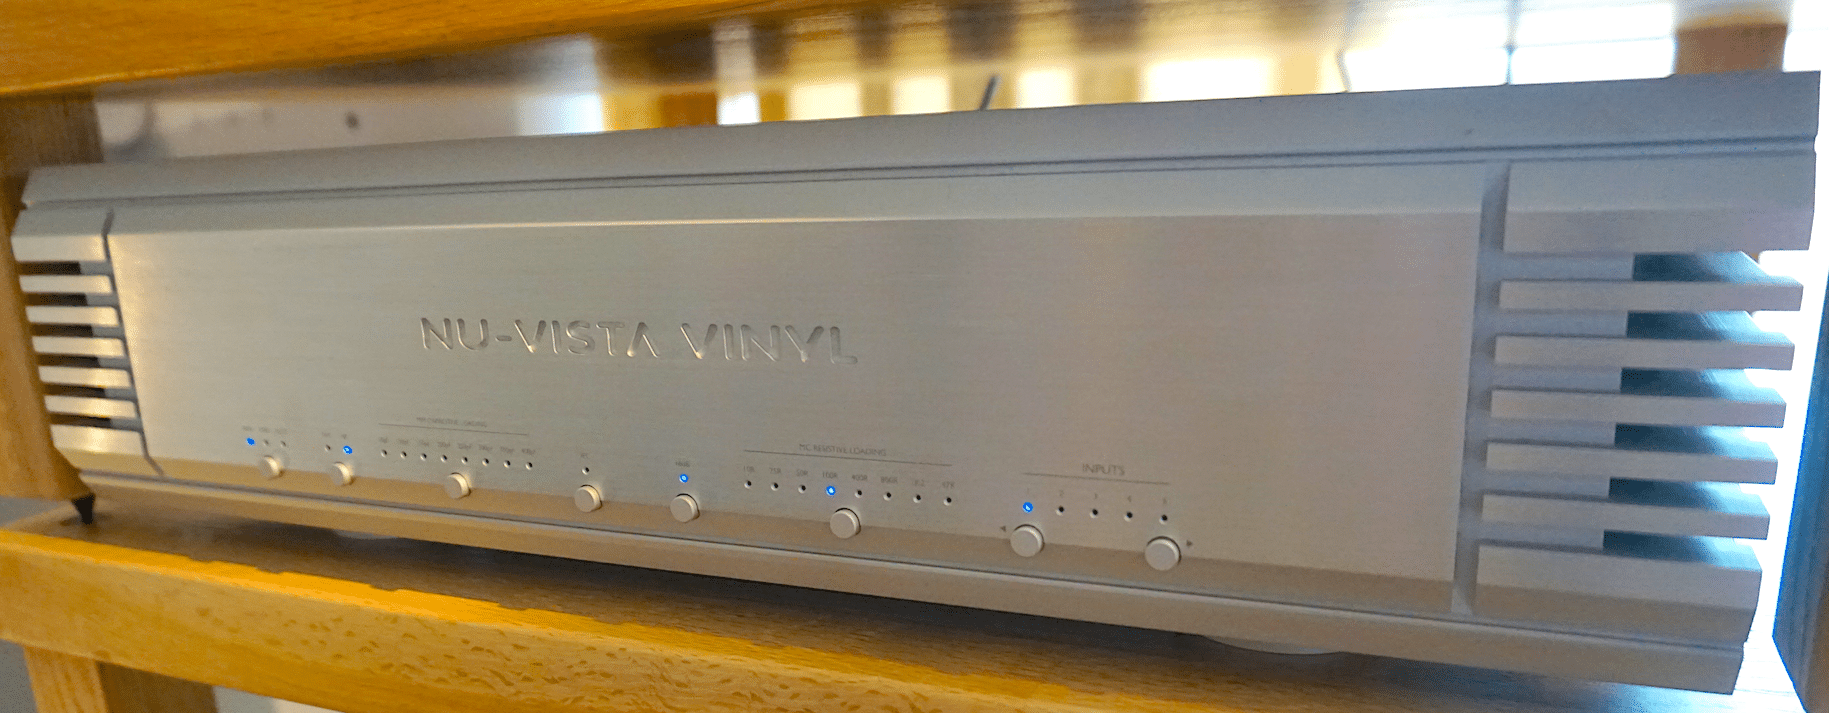 SOUND & VISION 2018: MUSICAL FIDELITY